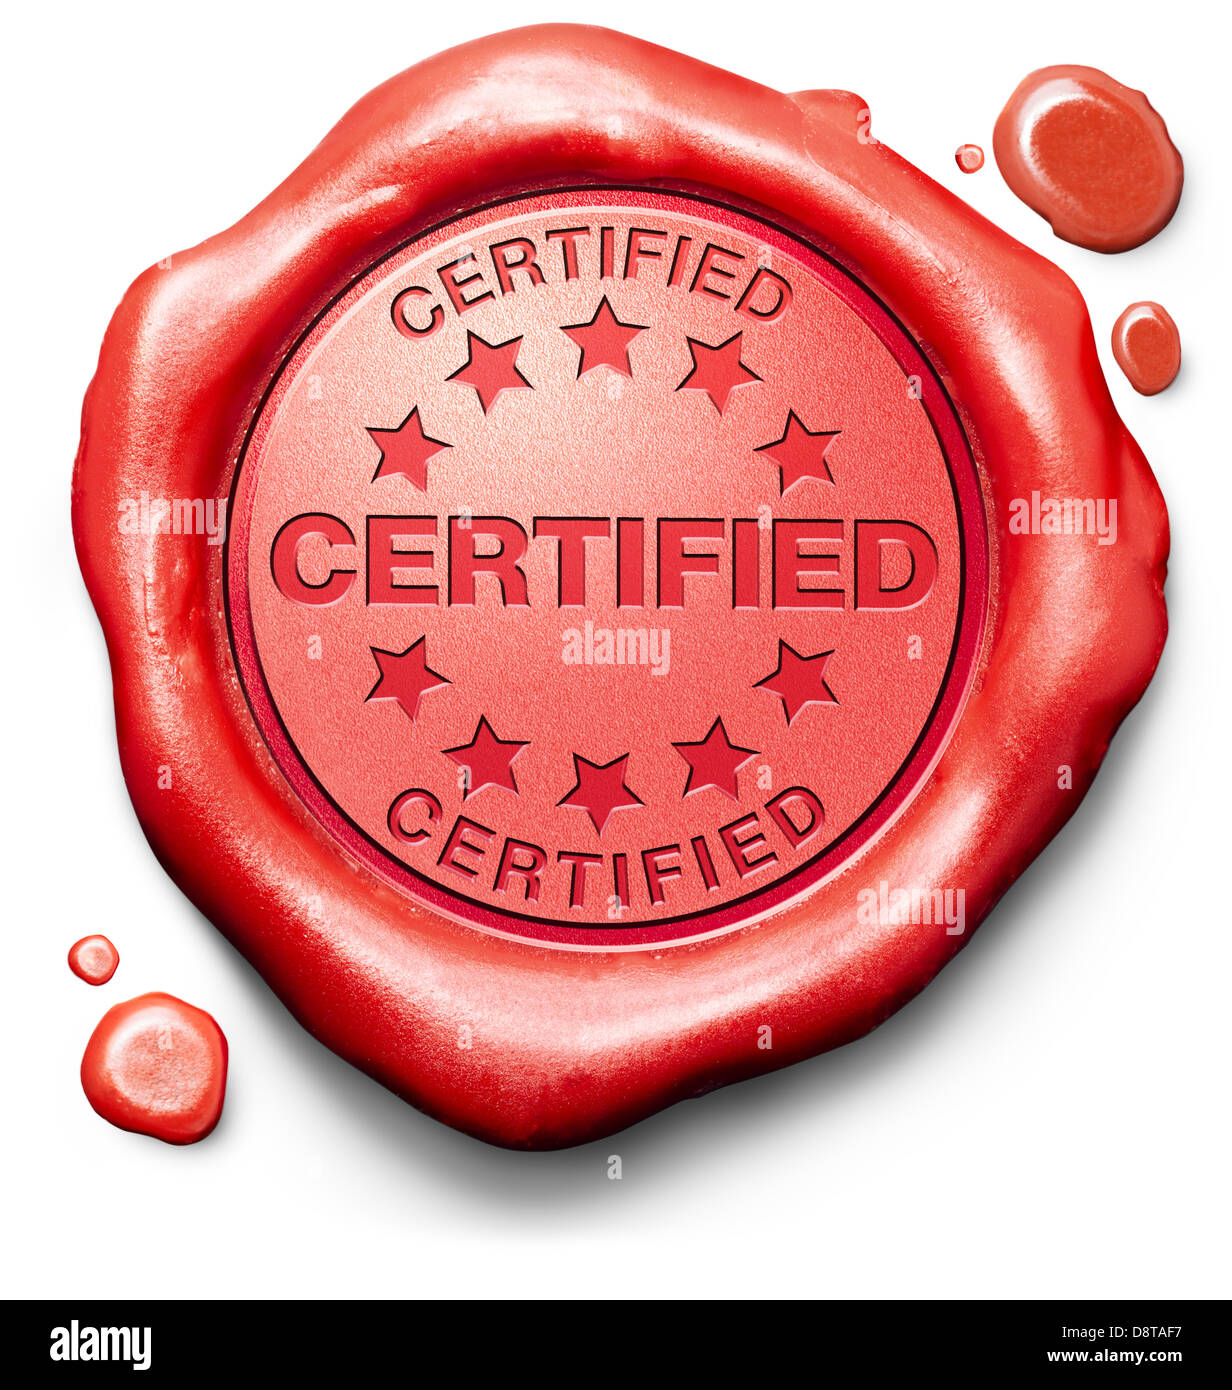 certified professional qualified pro red stamp label or icon - Stock Image